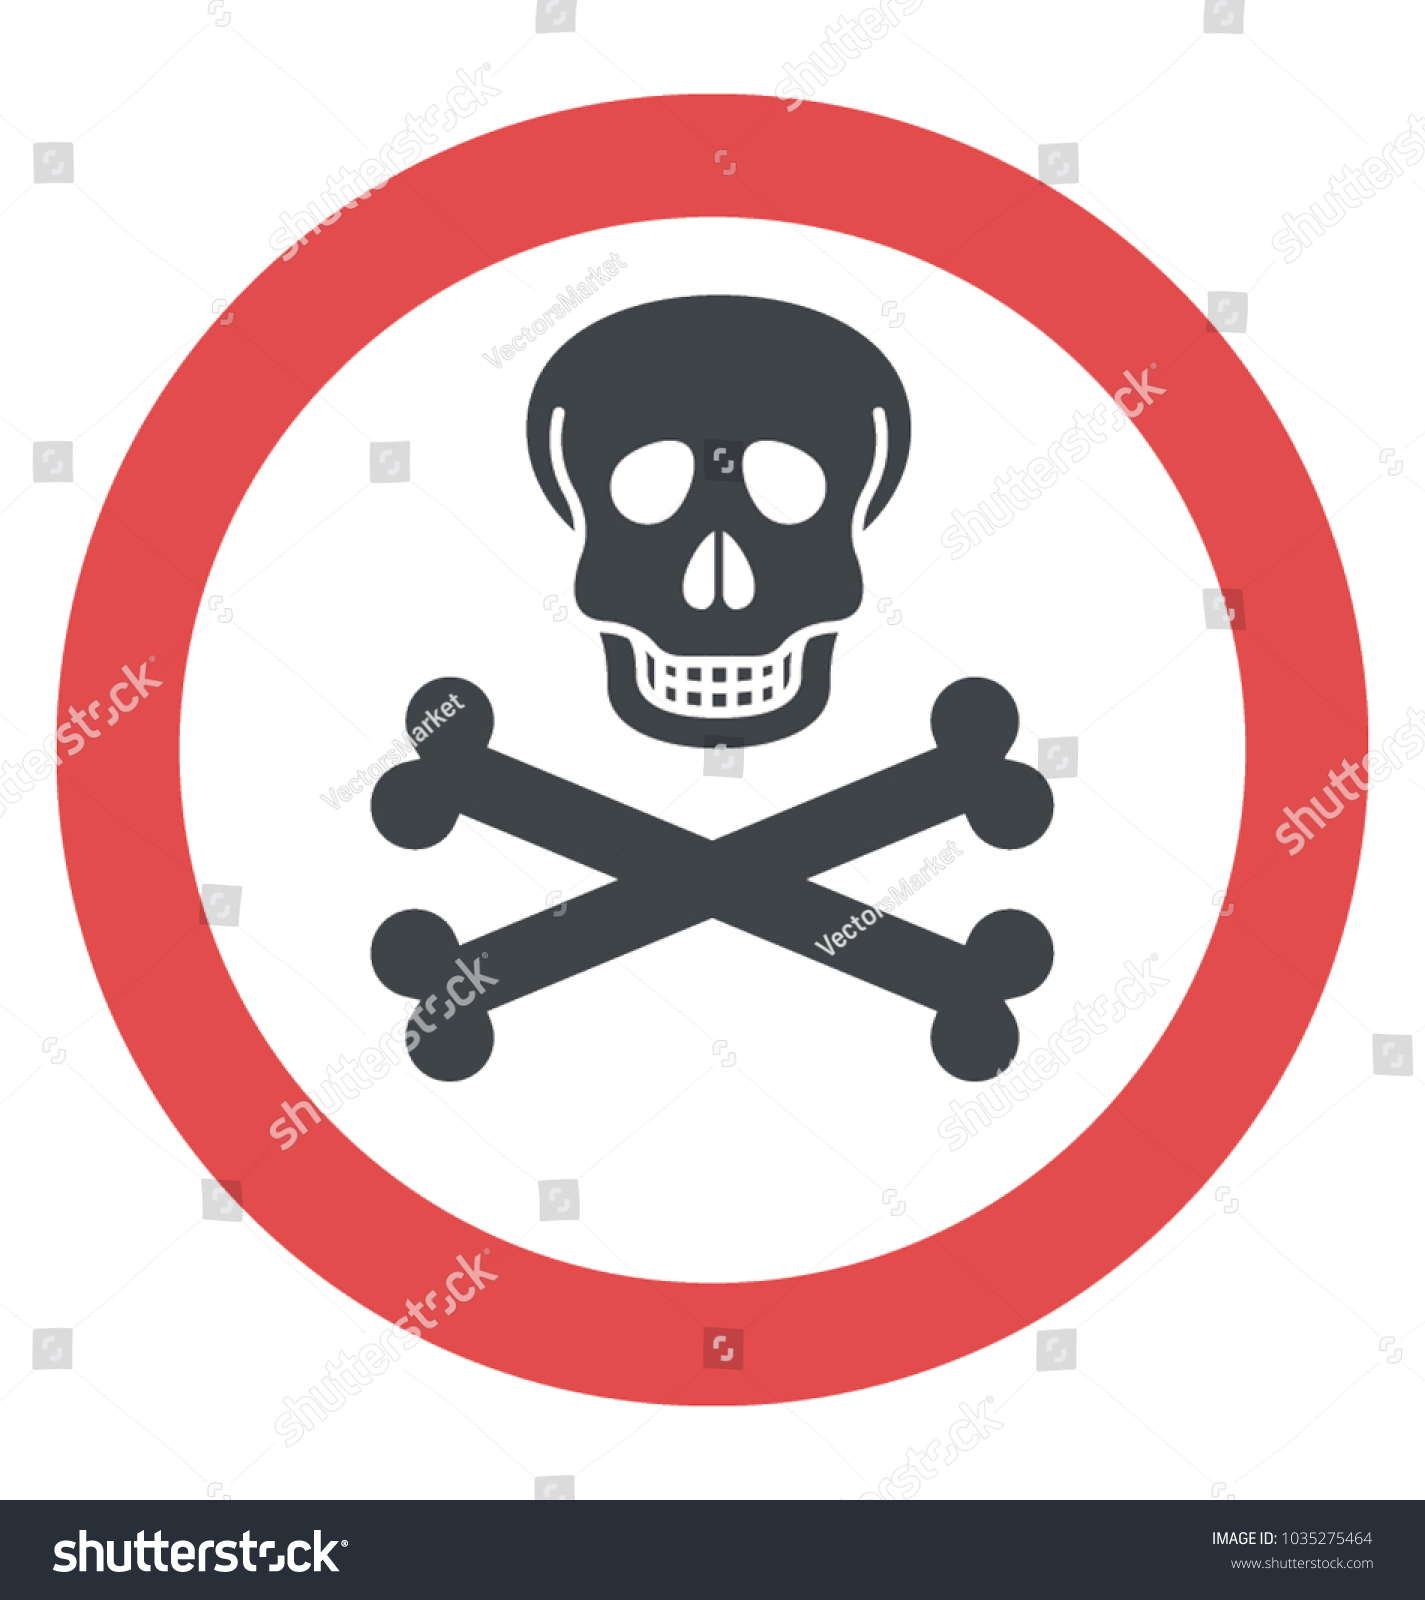 Skull crossbones toxic symbol stock vector 1035275464 shutterstock skull and crossbones the toxic symbol biocorpaavc Images